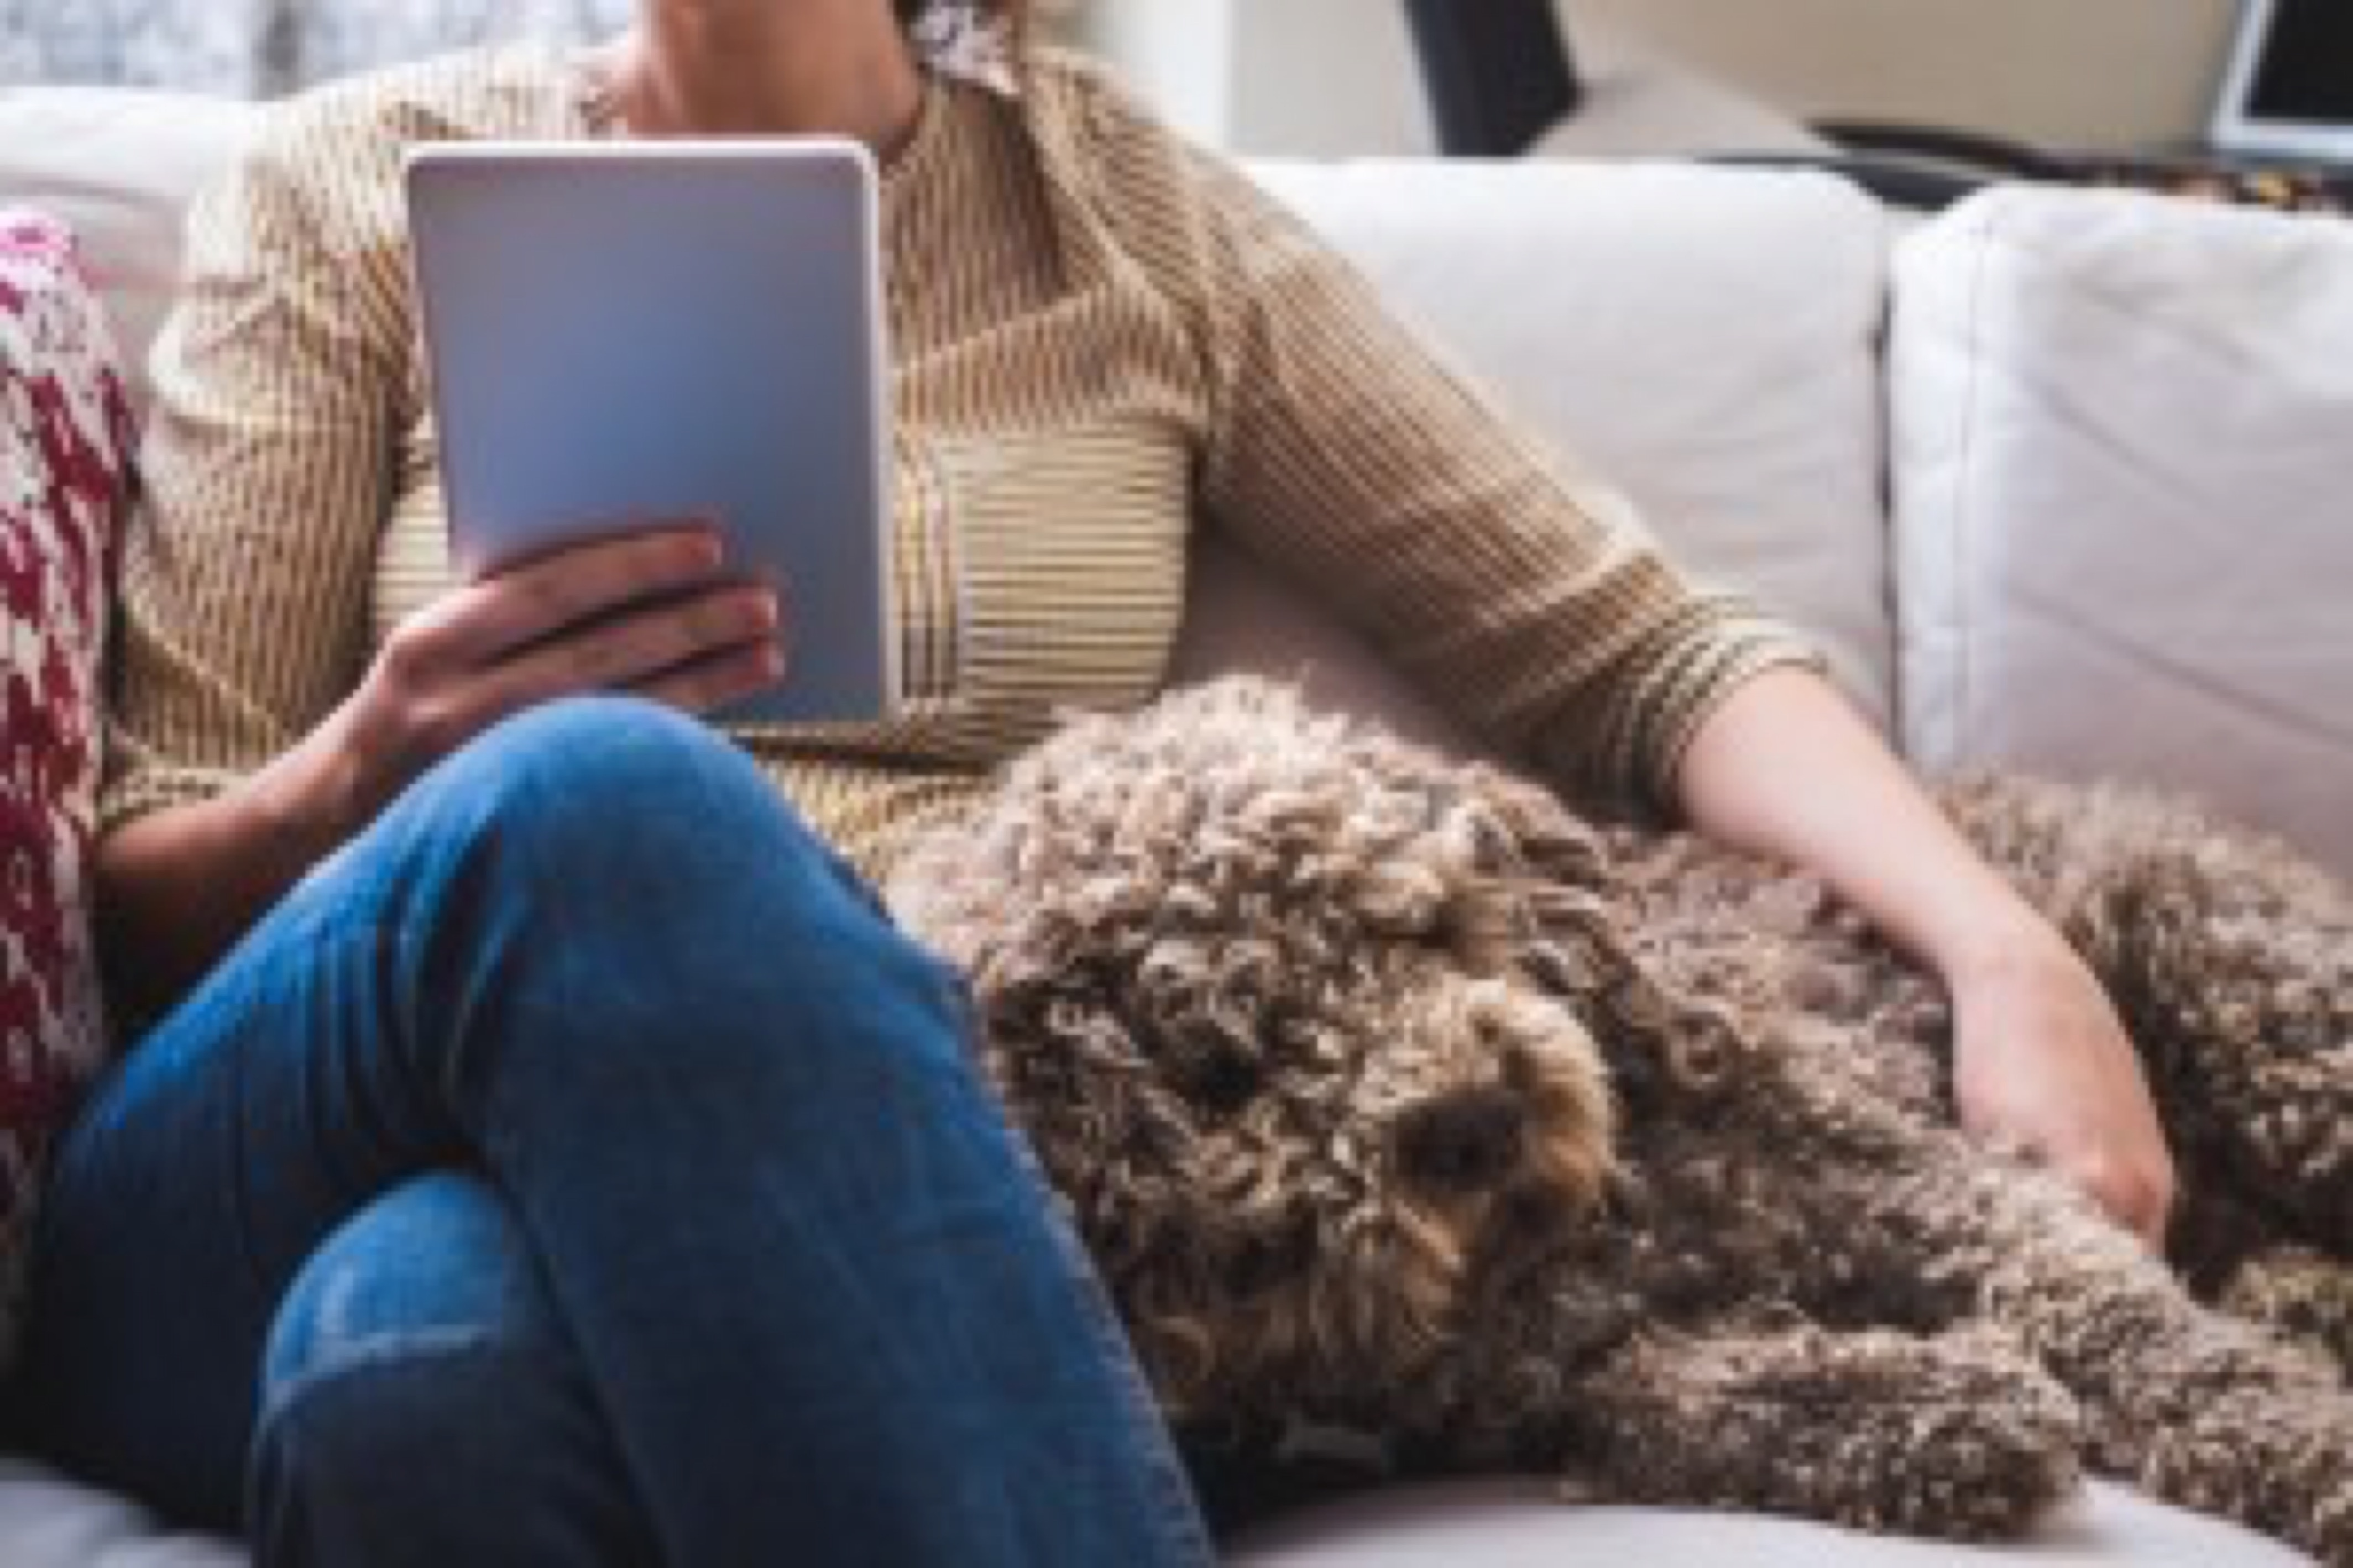 Young woman at home with a tablet and a dog